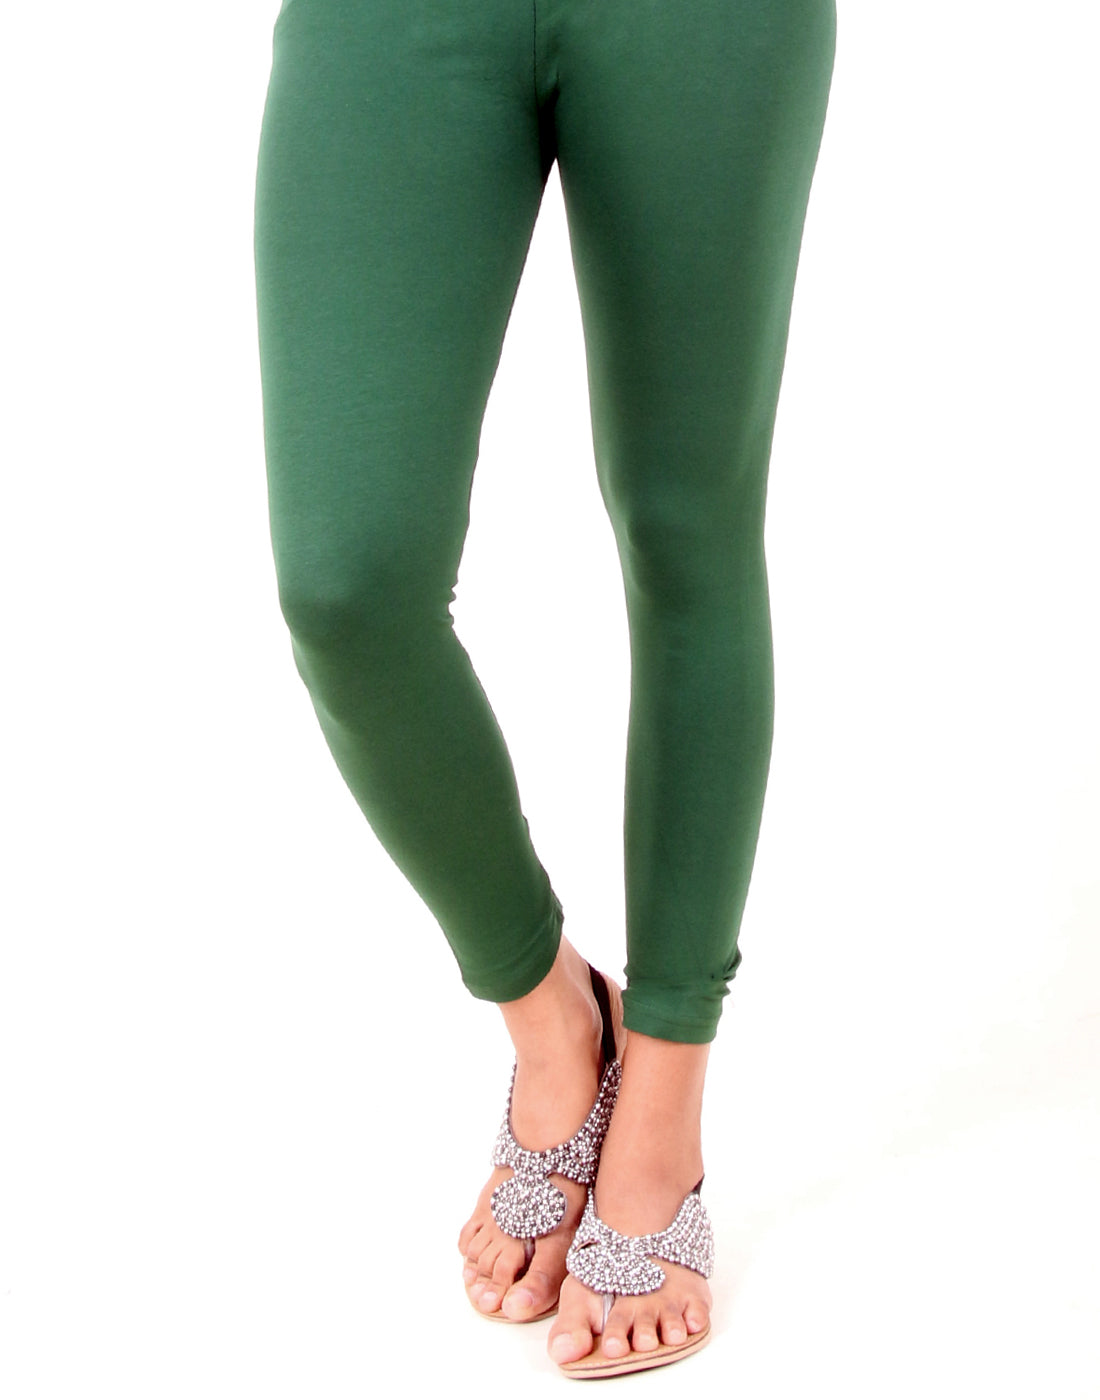 Greener Pastures Ankle Leggings